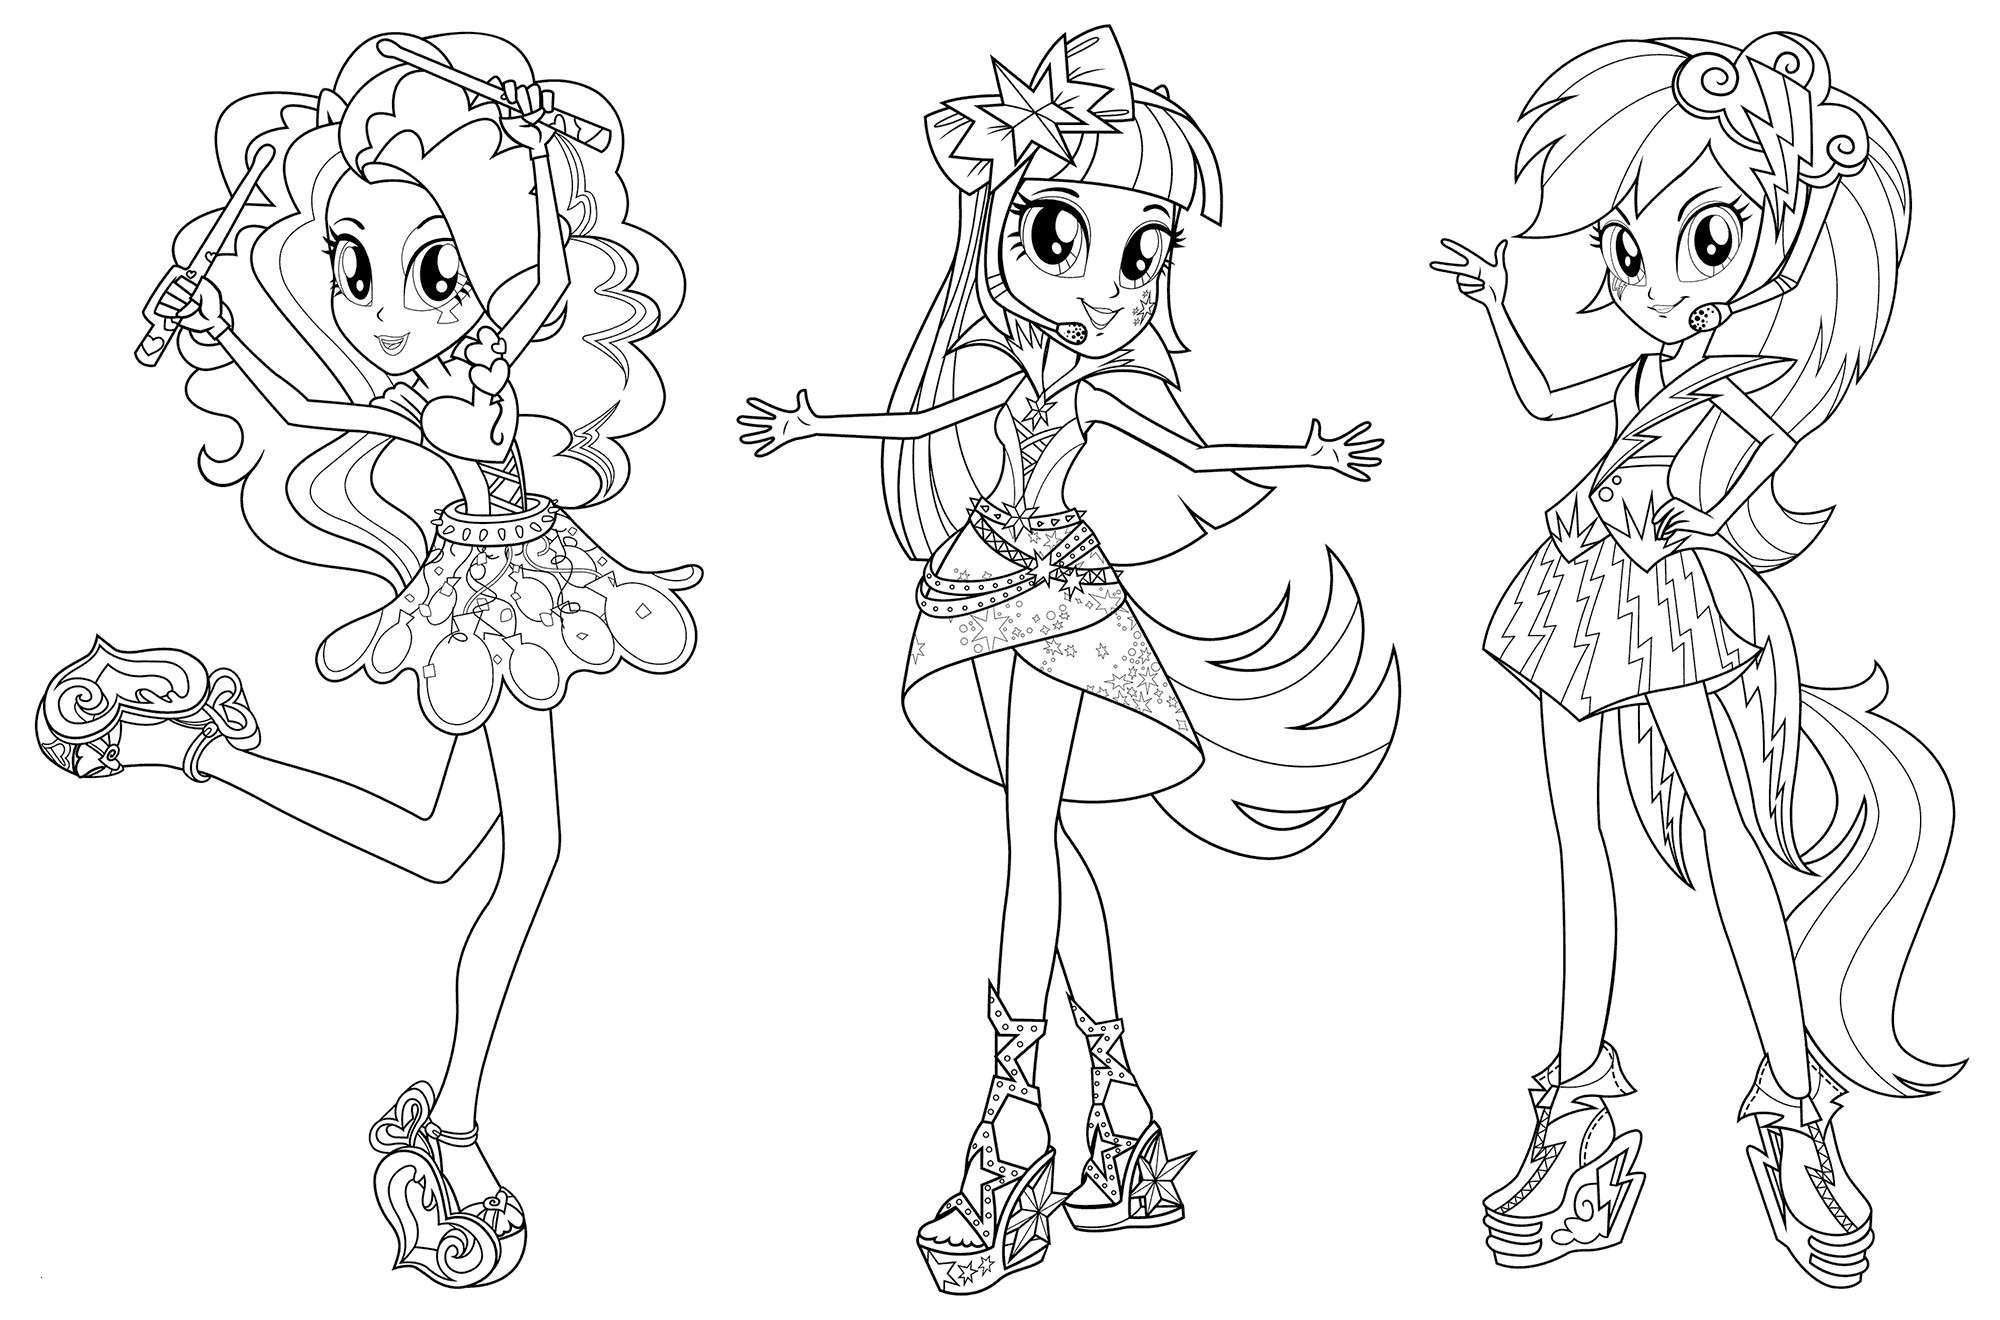 Rainbow Dash Ausmalbilder Inspirierend Equestria Girls Rainbow Rocks Coloring Pages Best Stock Olchis Galerie